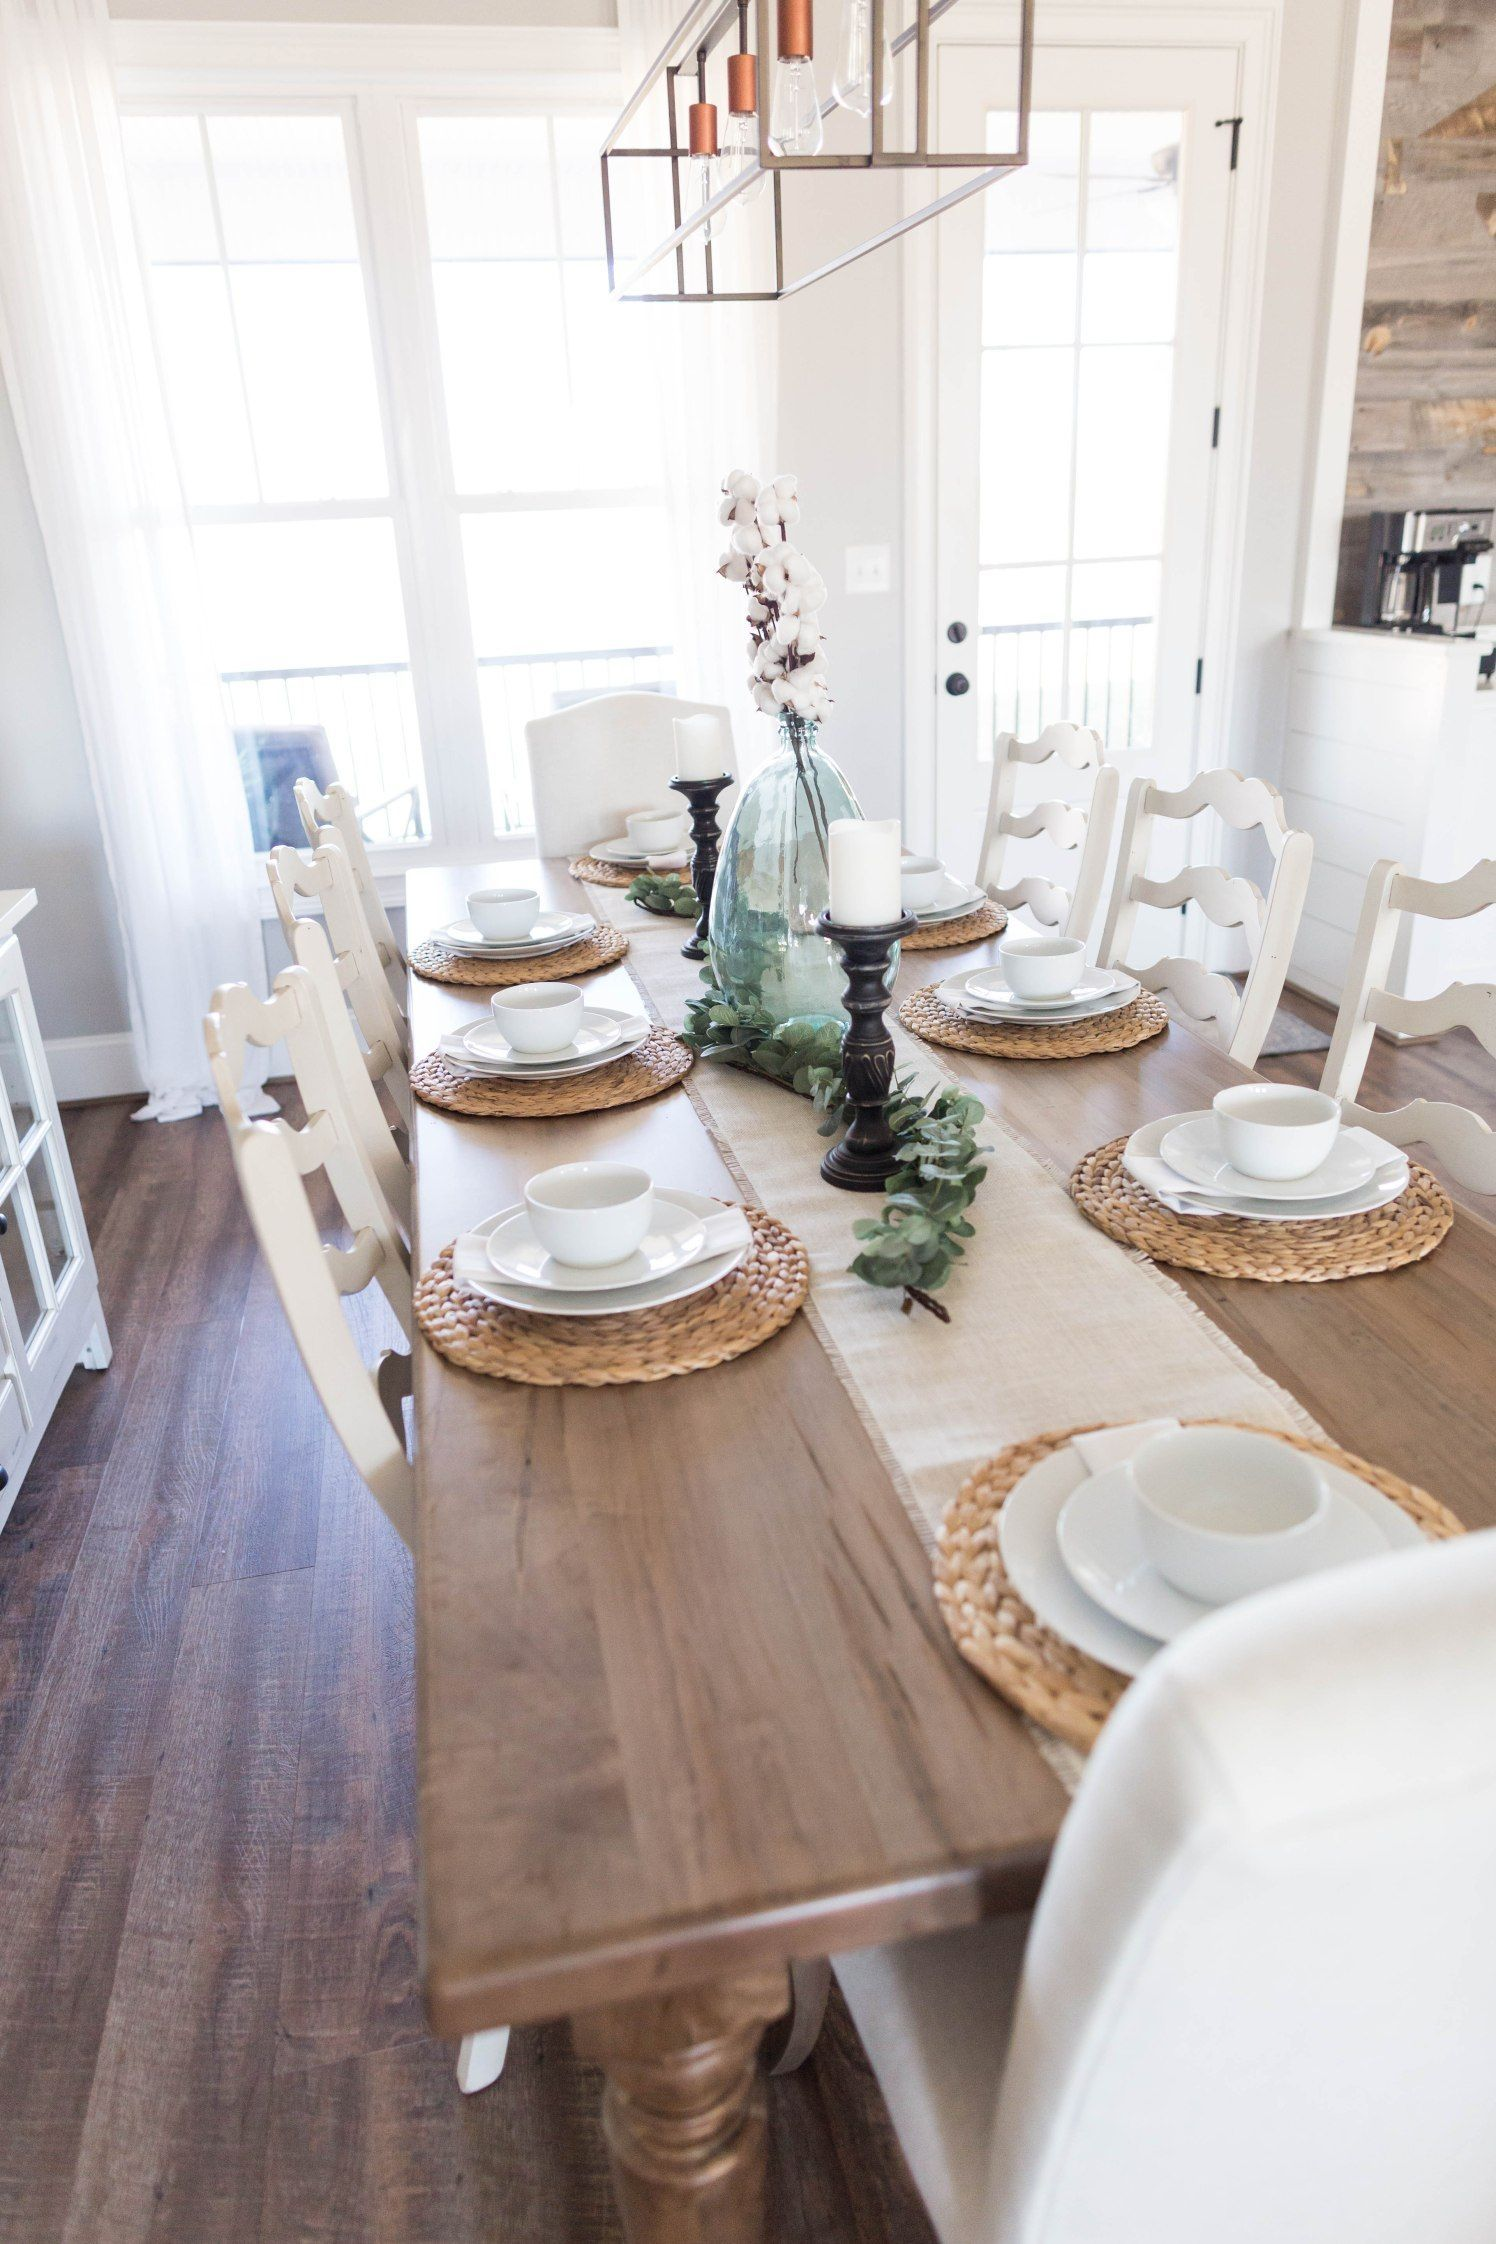 Pin By Veronica Ayala On Tree Park Apartment In 2020 Farmhouse